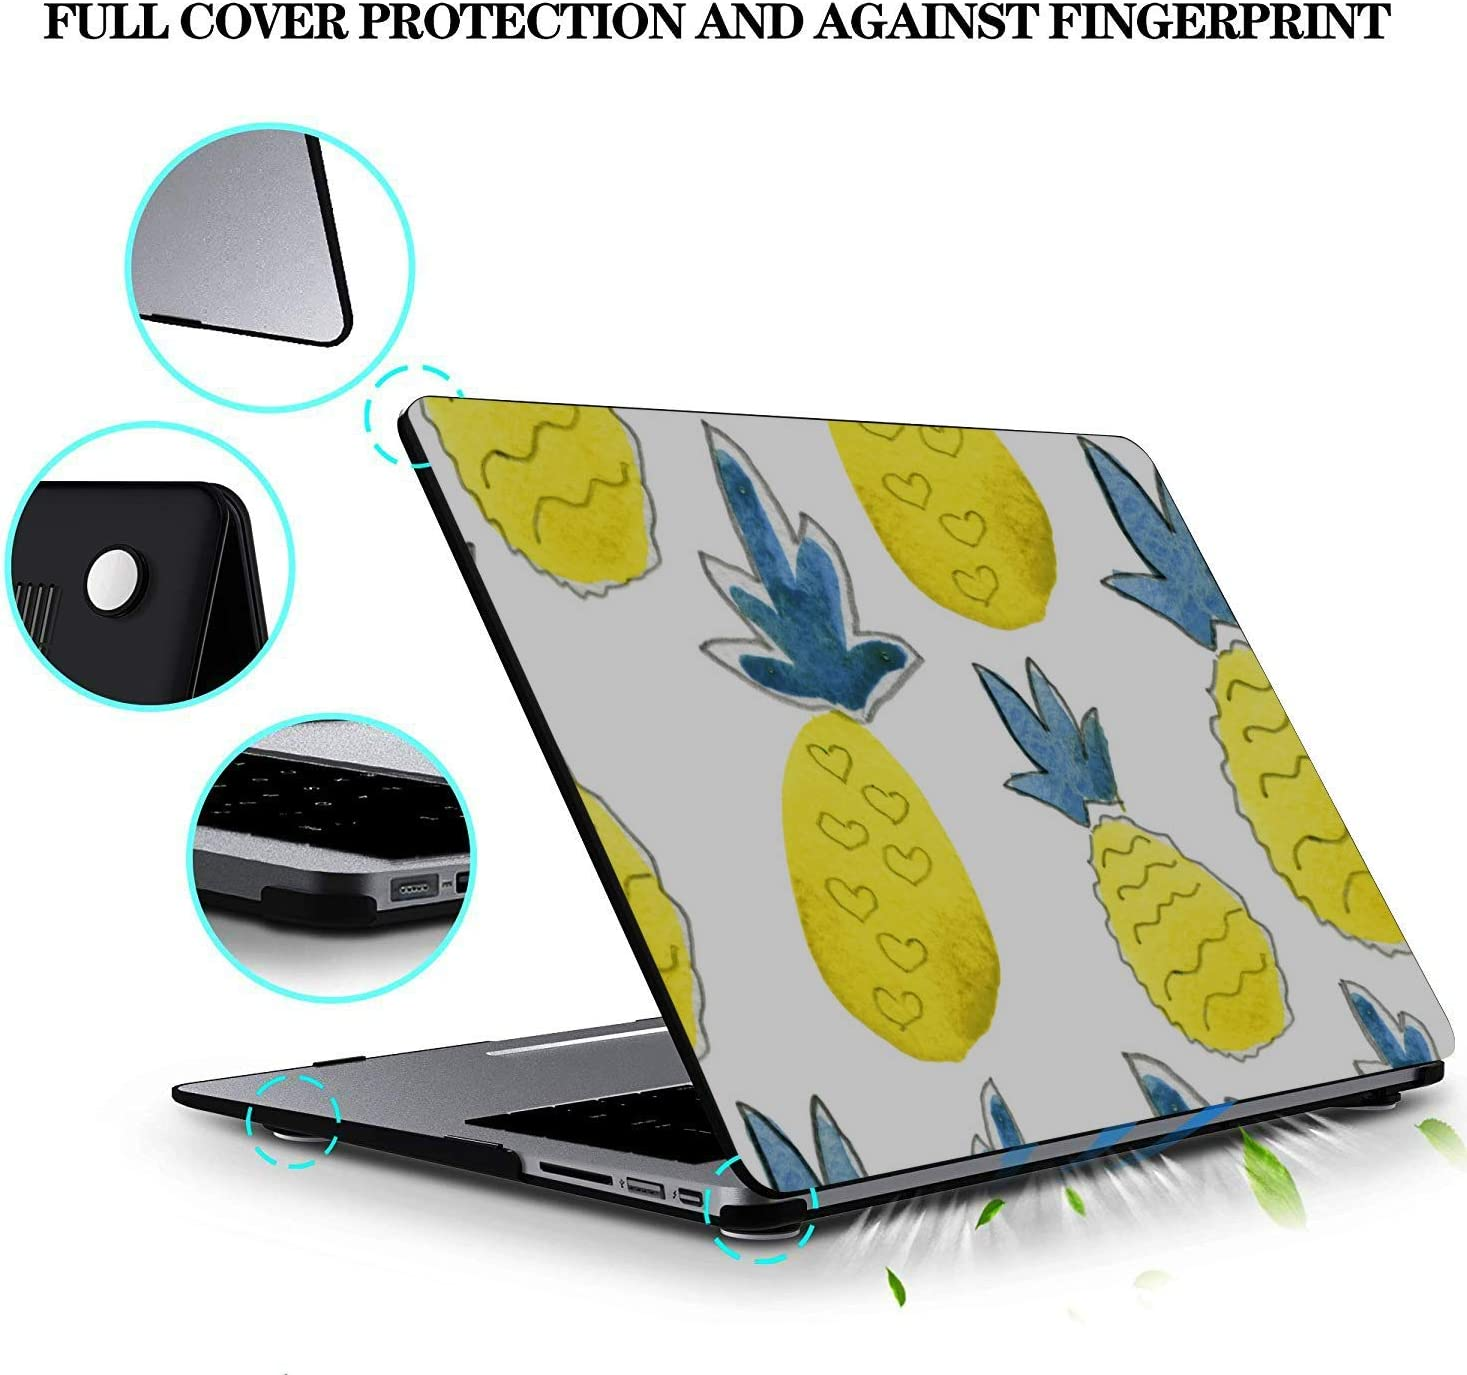 MacBook Laptop Cover Summer Sweet Cute Fruit Pineapple Plastic Hard Shell Compatible Mac Air 11 Pro 13 15 MacBook Air Computer Case Protection for MacBook 2016-2019 Version